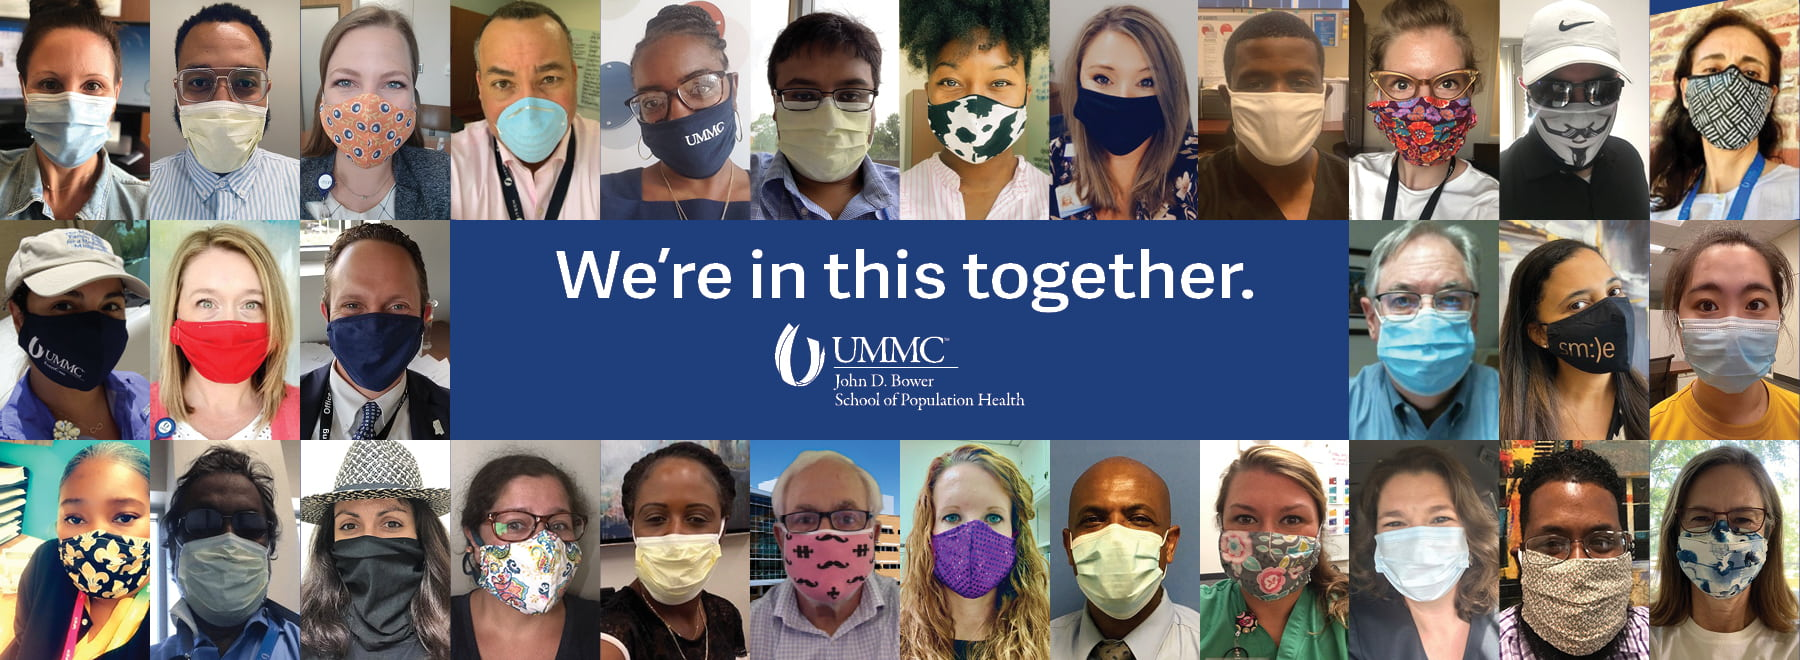 We're in this together. UMMC John D. Bower School of Population Health.